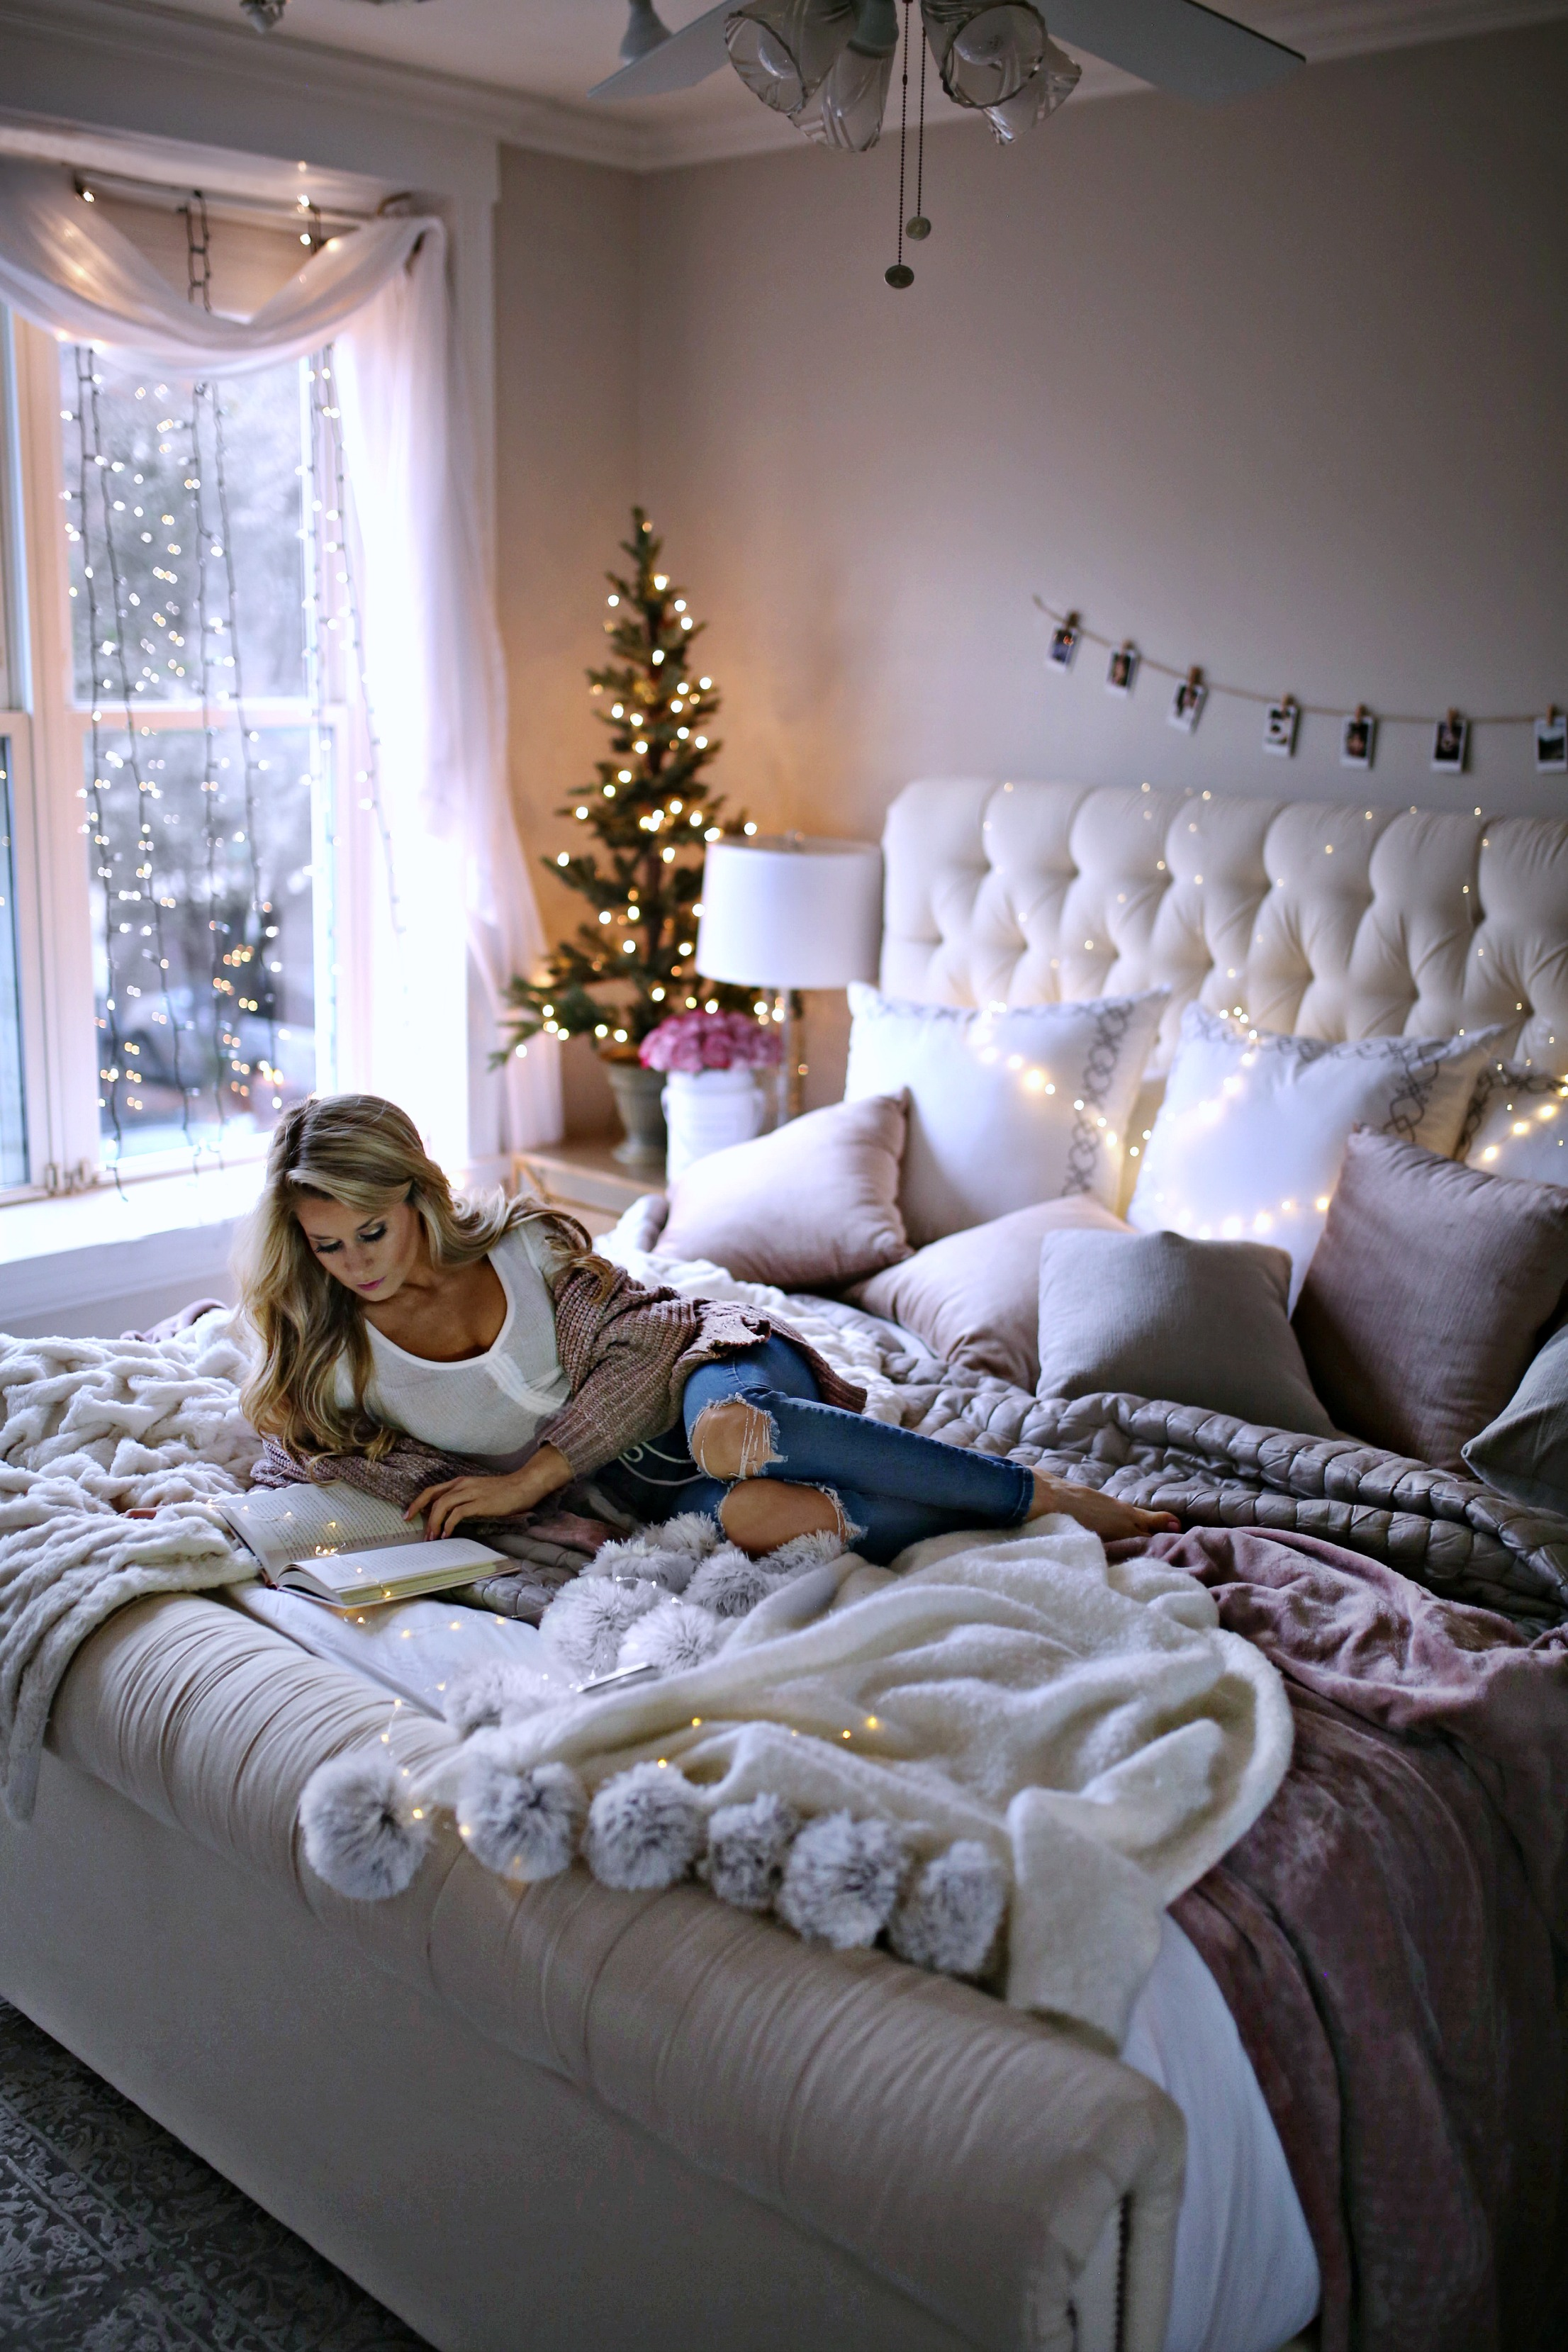 7 Holiday Decor Ideas for Your Bedroom - Welcome to Olivia ... on Room Decorations  id=71721